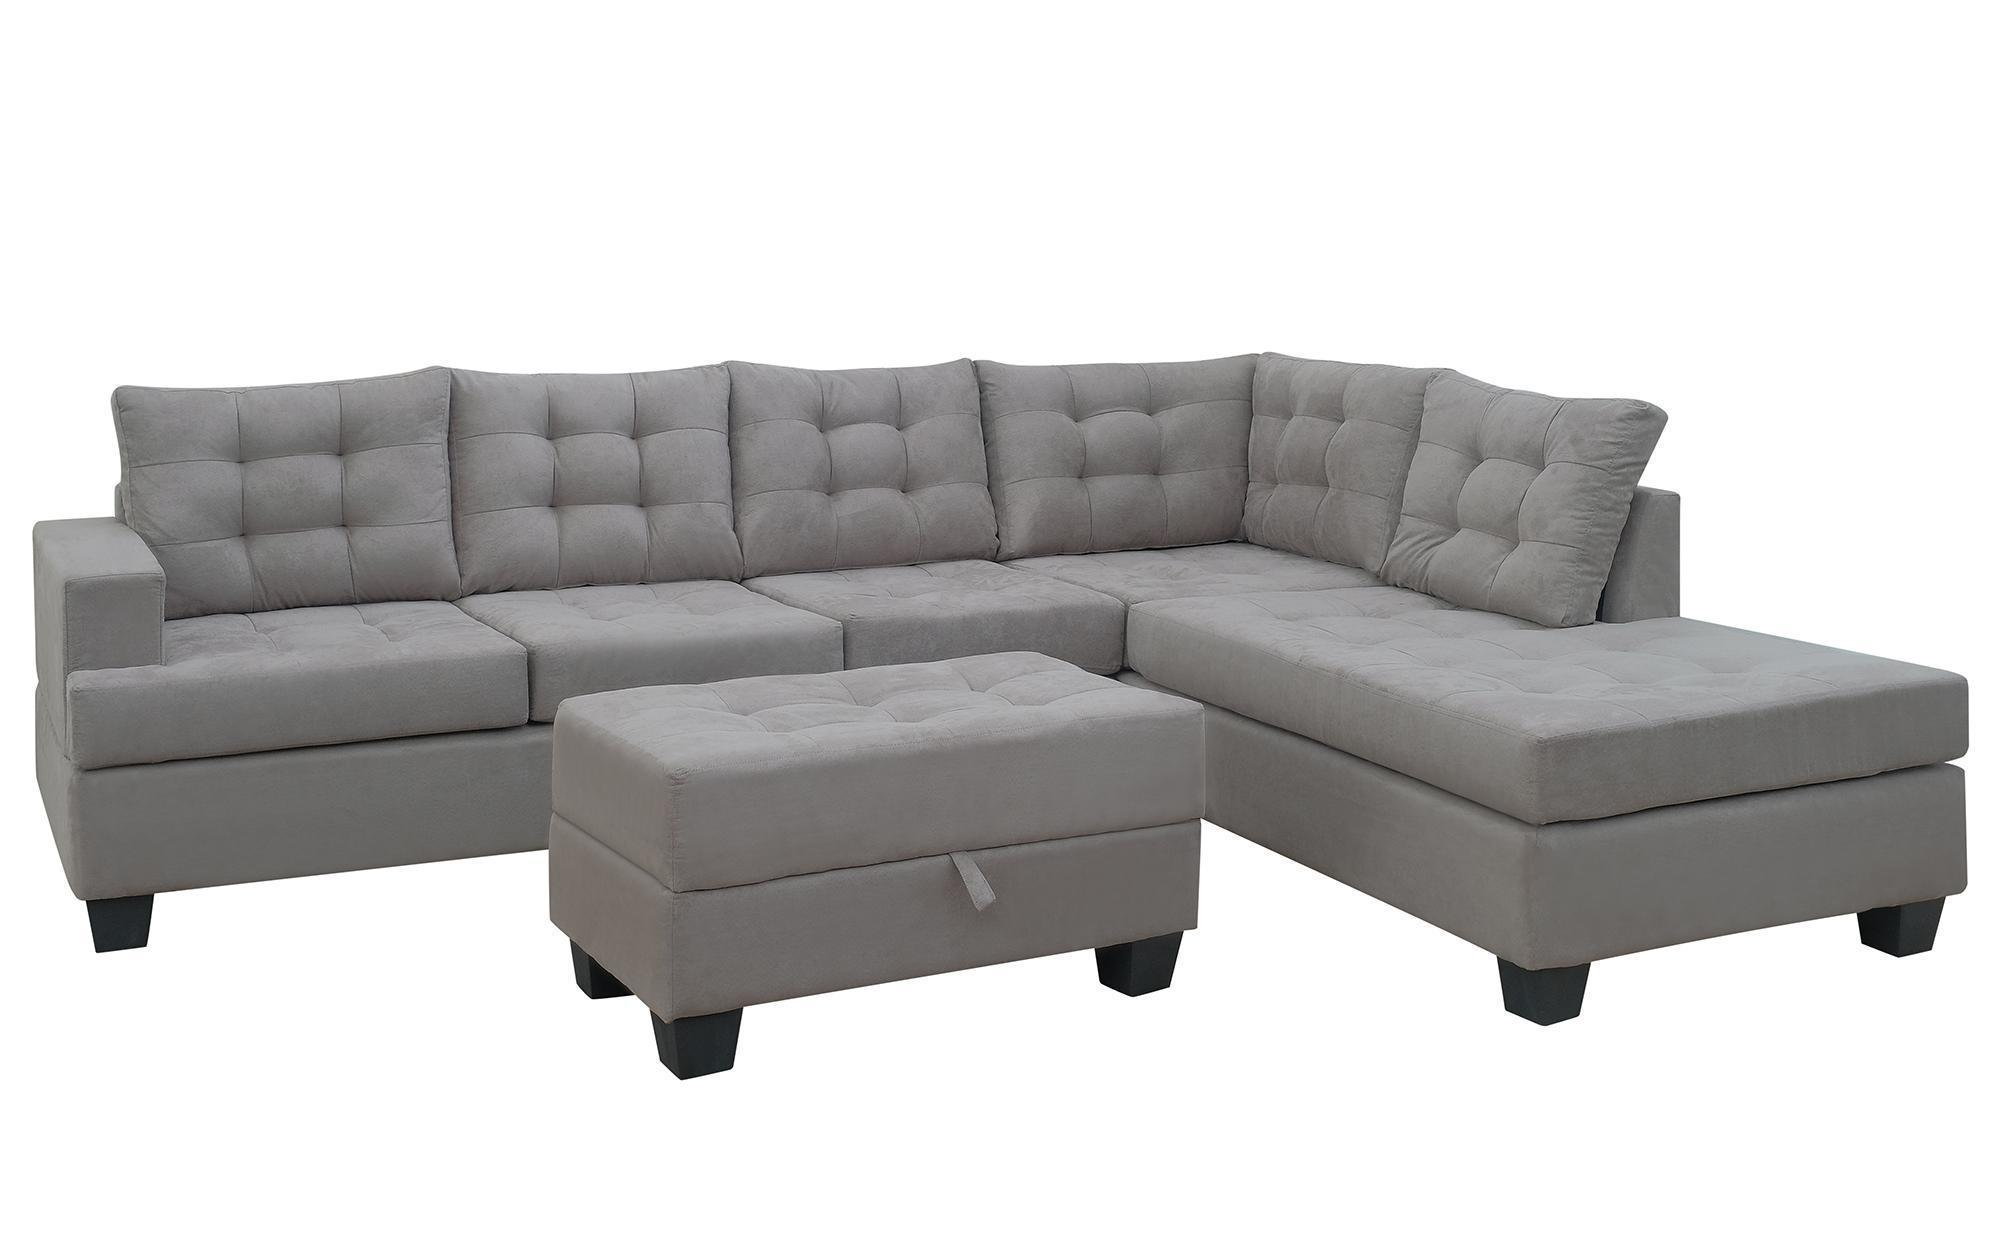 2020 Sectional Sofa With Chaise Lounge And Storage Ottoman L Shape Sofa Couch Living Room Furnituregray Sm000049eaa From Beautydesign 936 34 Dhgate Com